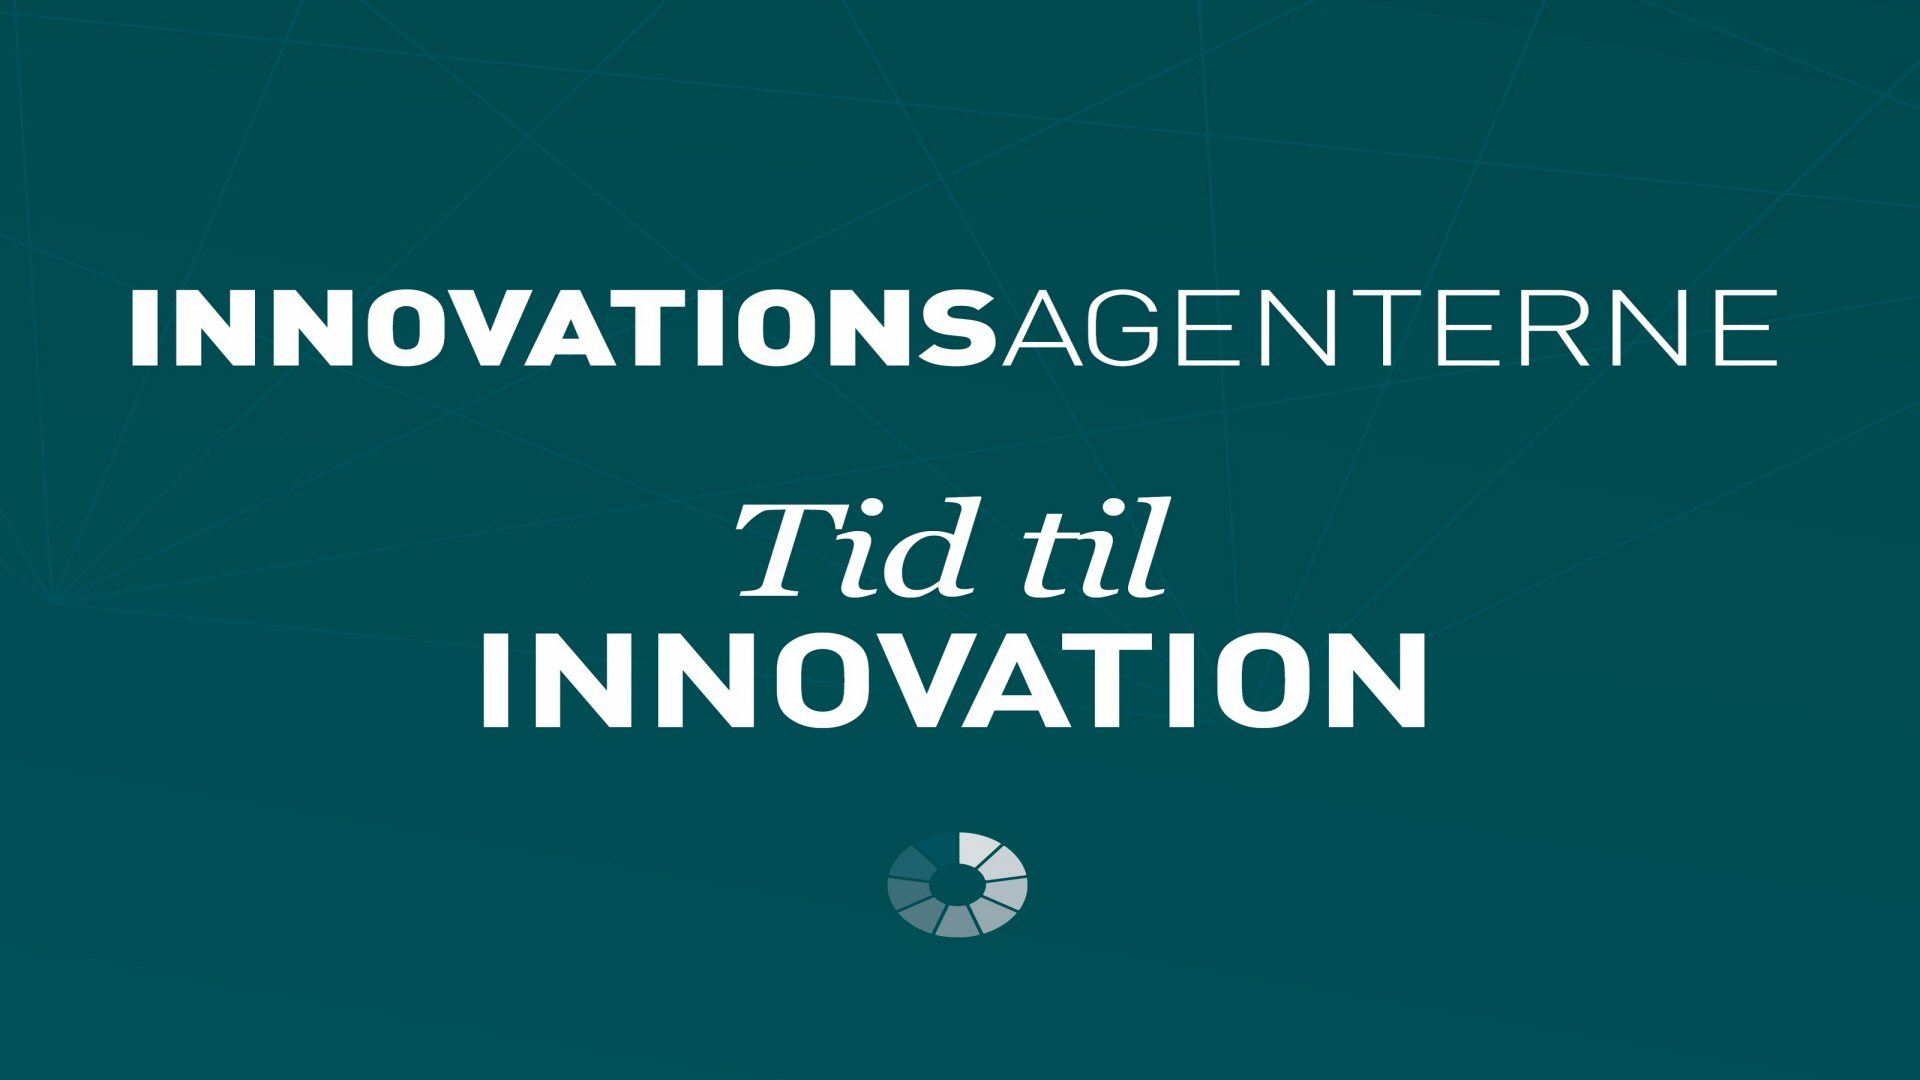 InnovationsAgenterne